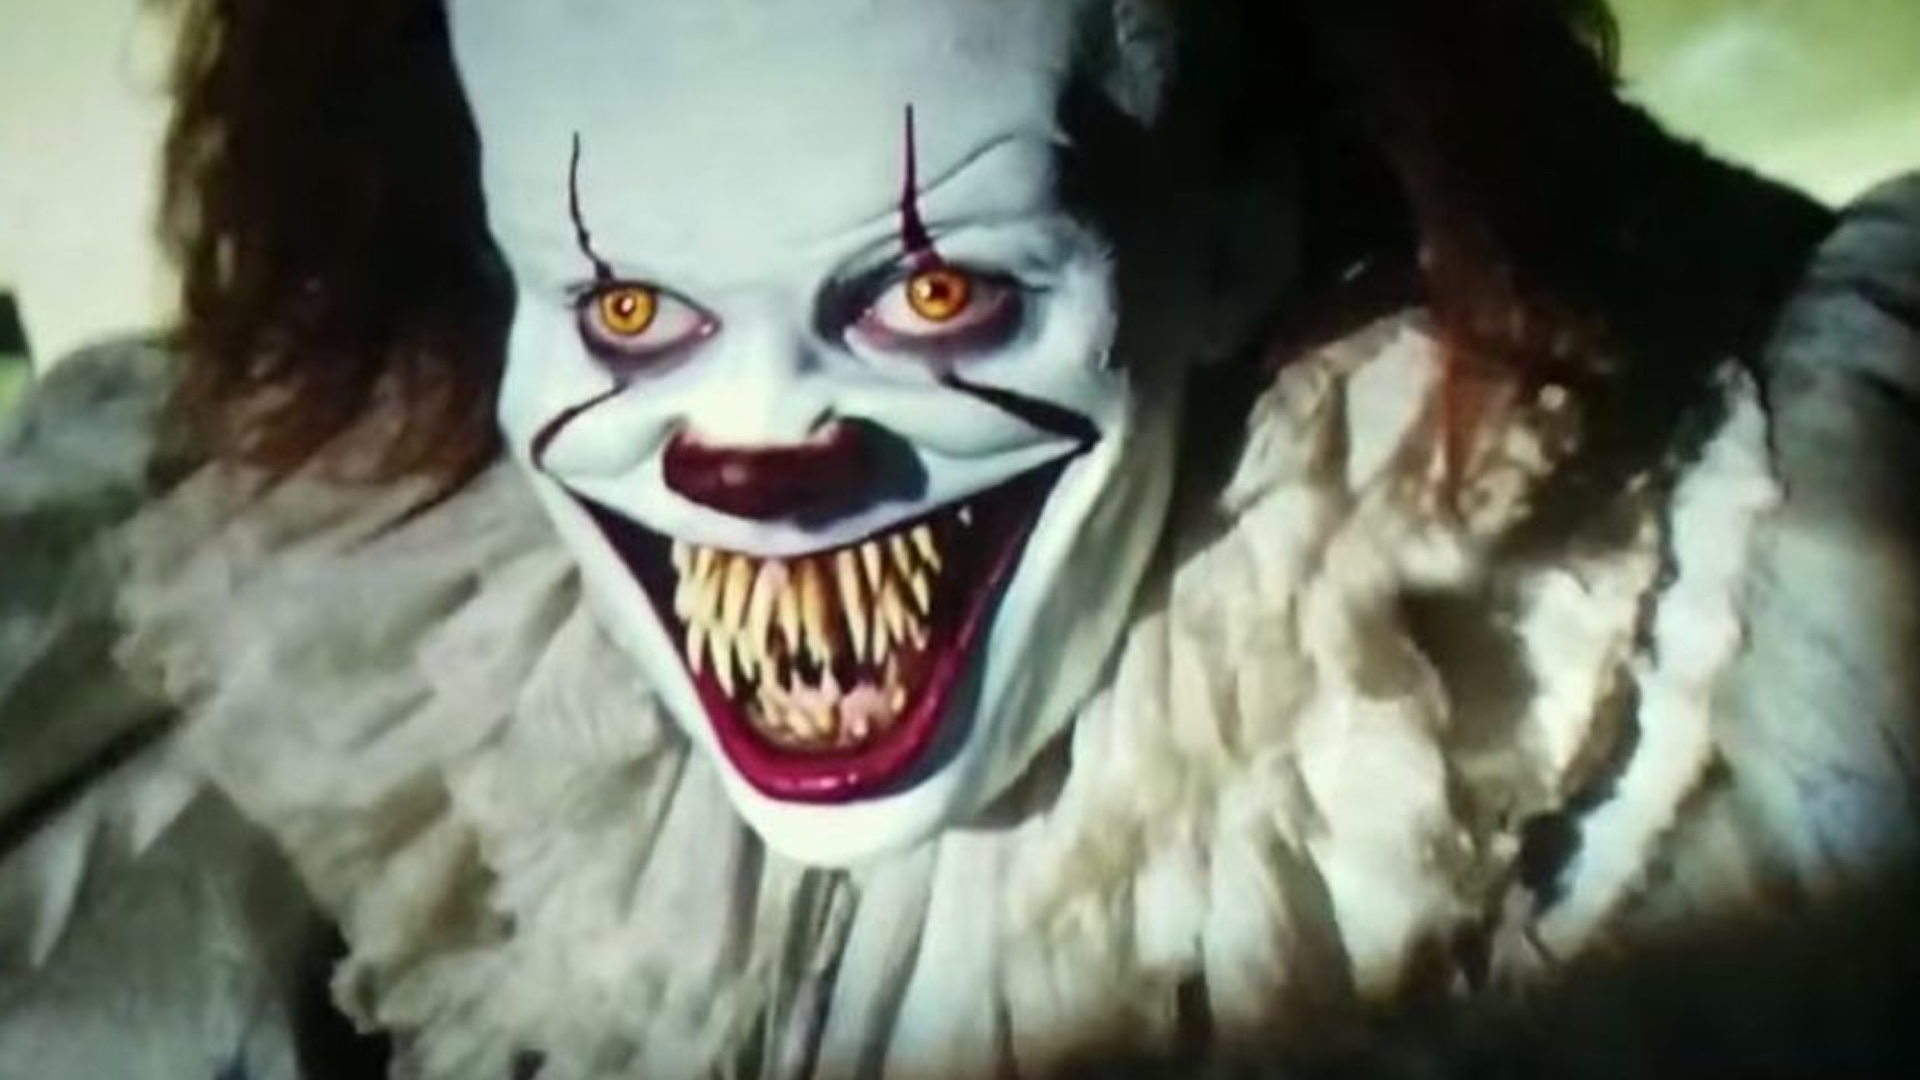 disturbing deleted scene from it featured pennywise the clown eating